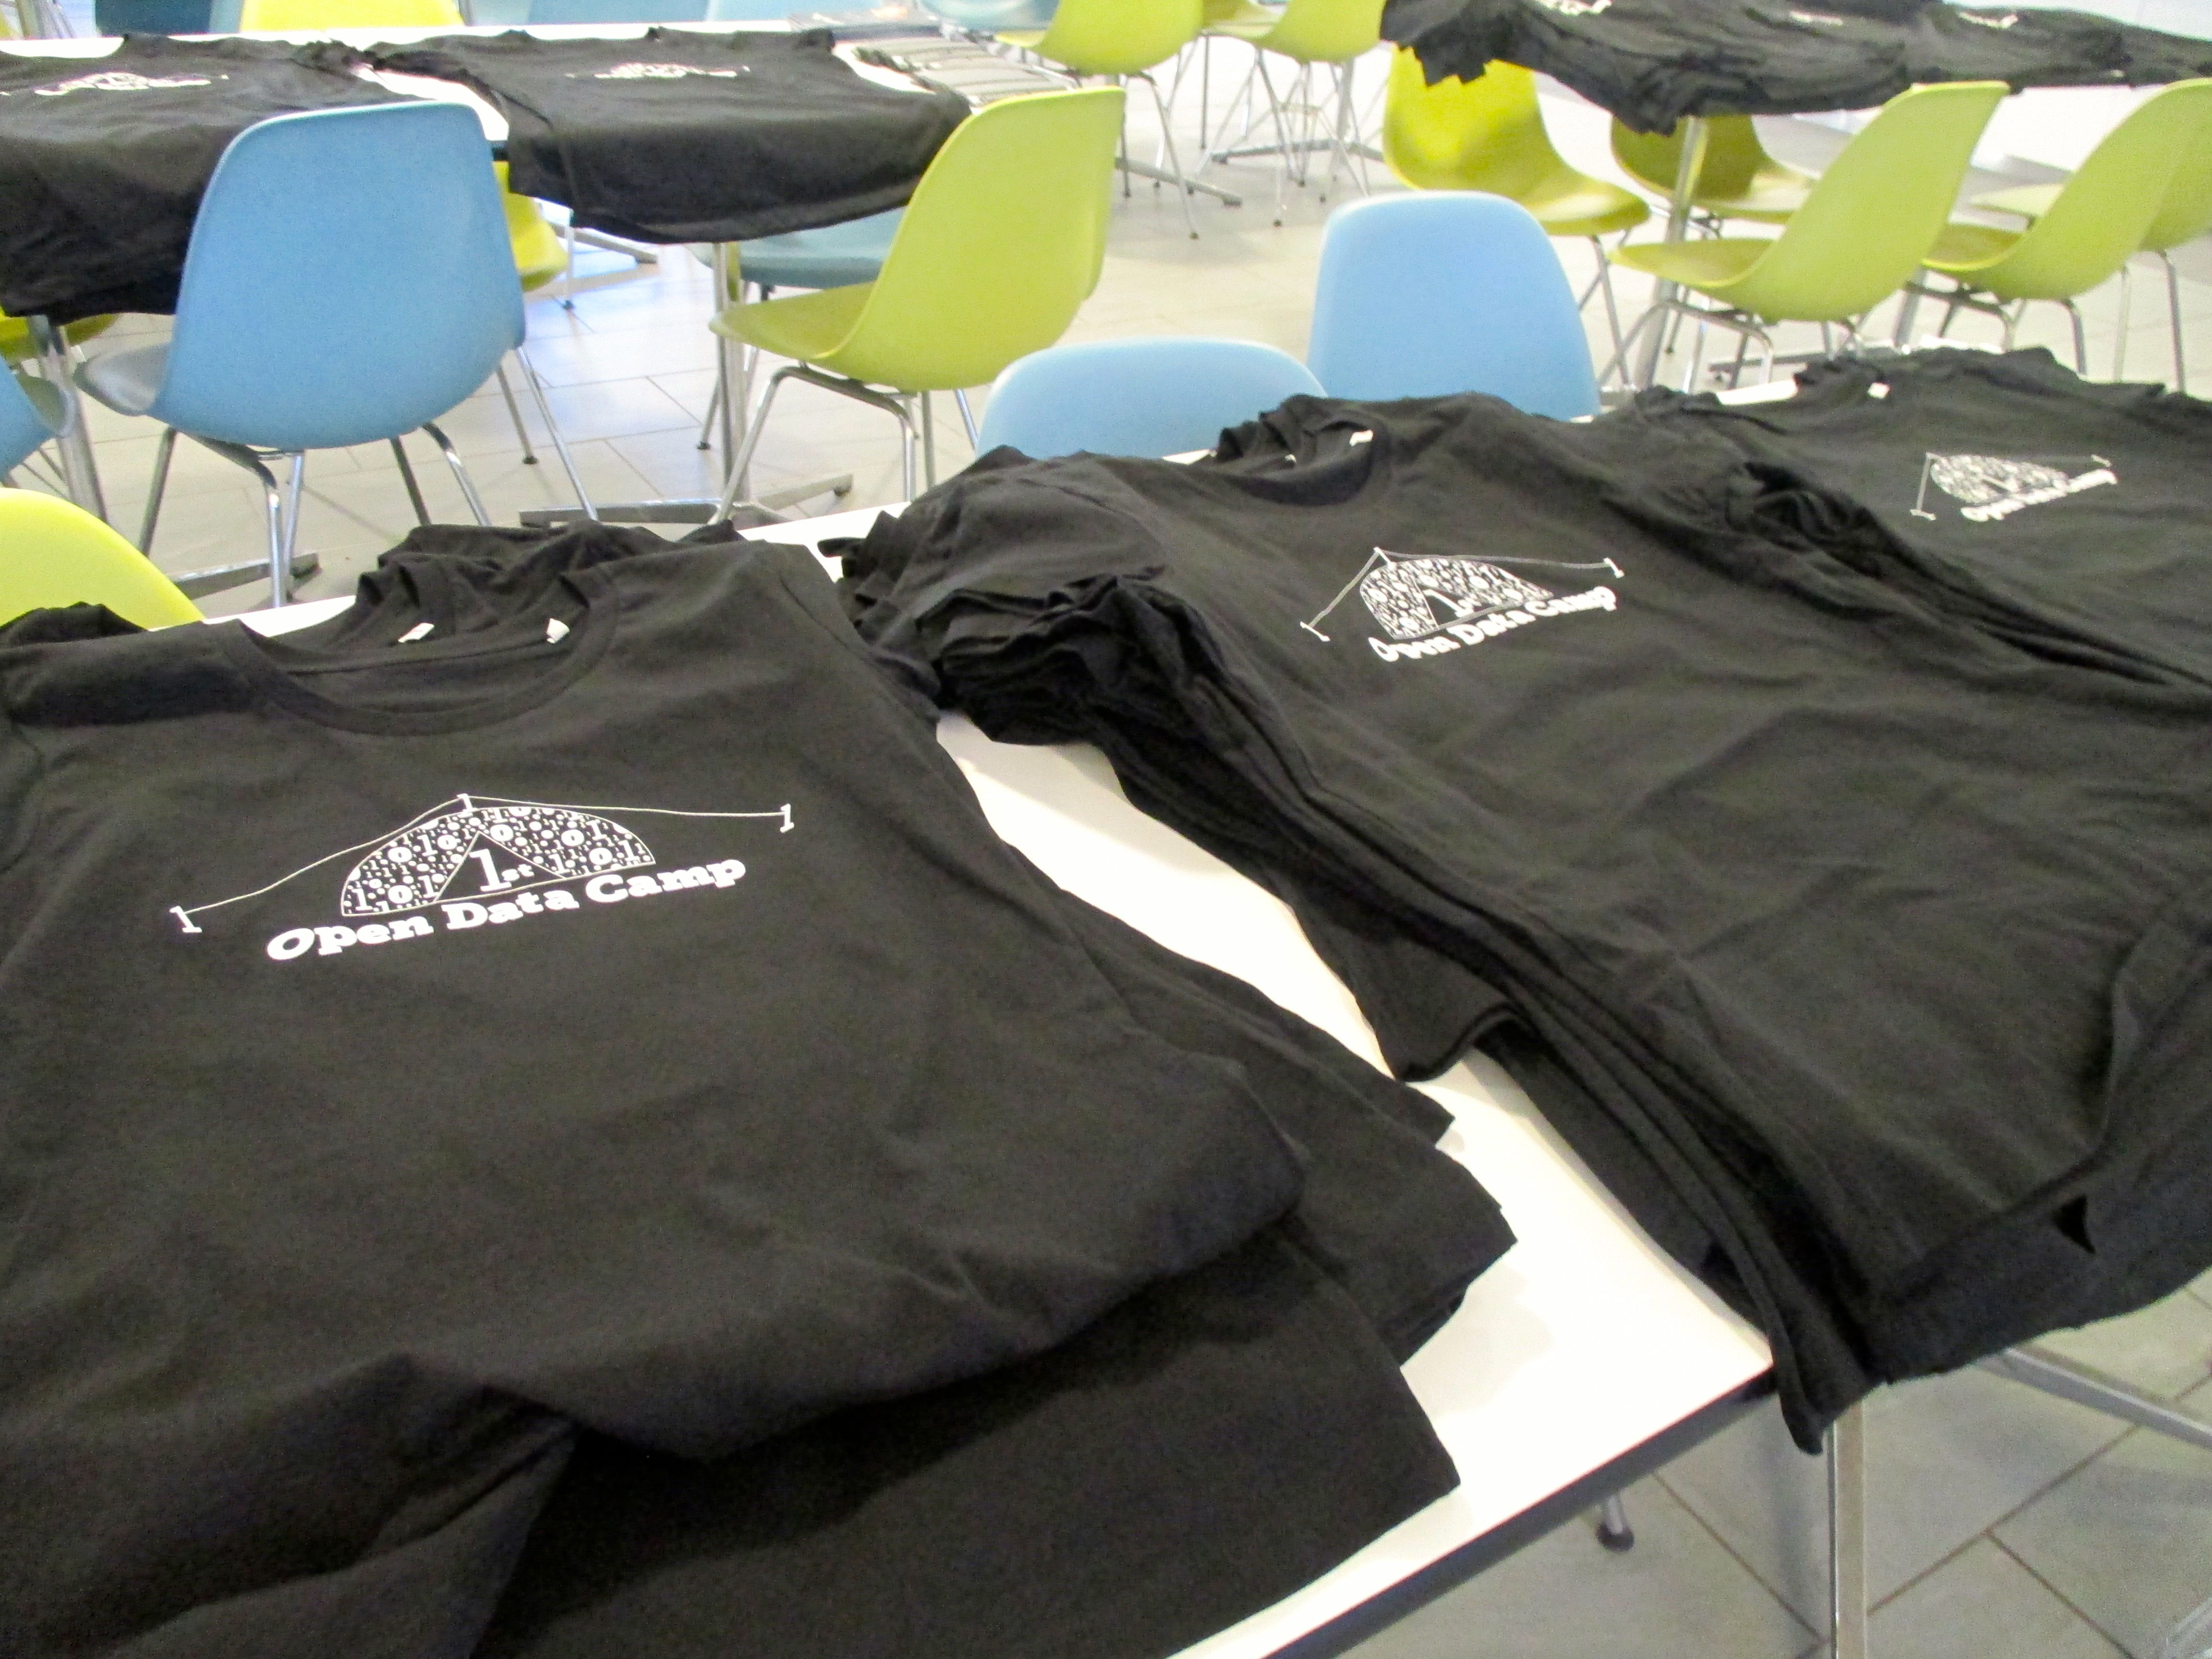 Open Data Camp t-shirts